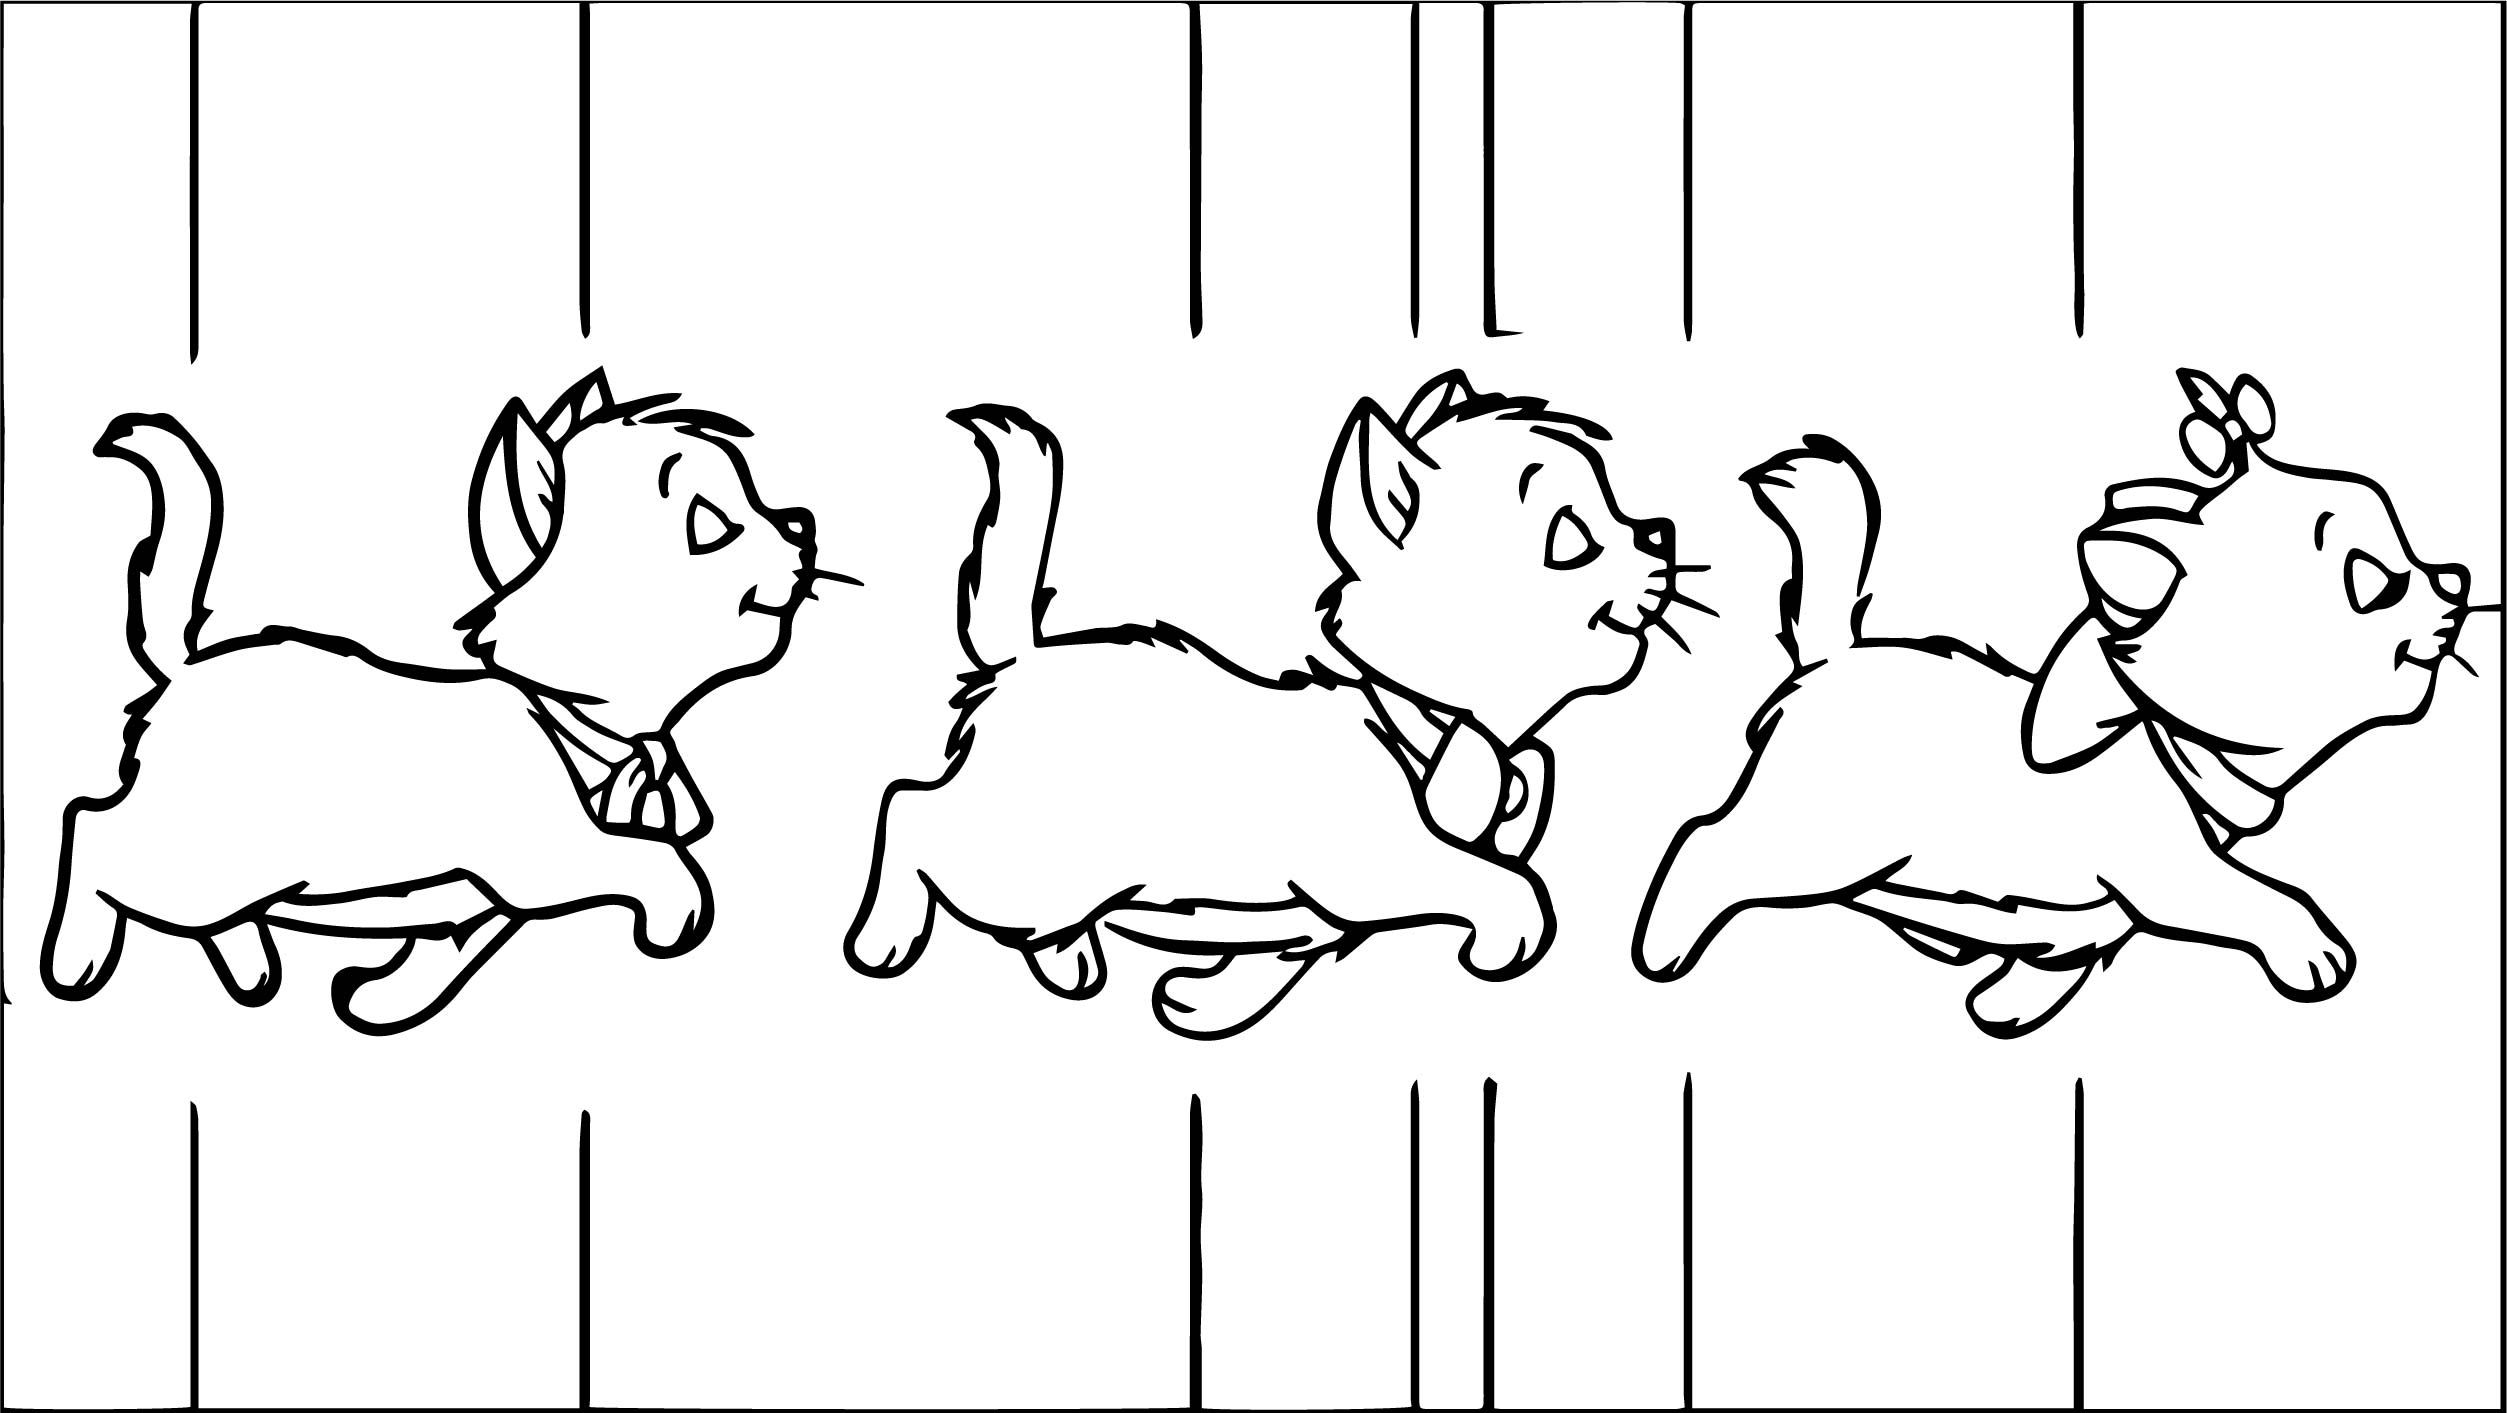 Cool Three Walking Cats Disney The Aristocats Coloring Page Coloring Pages Disney Coloring Pages Cartoon Coloring Pages